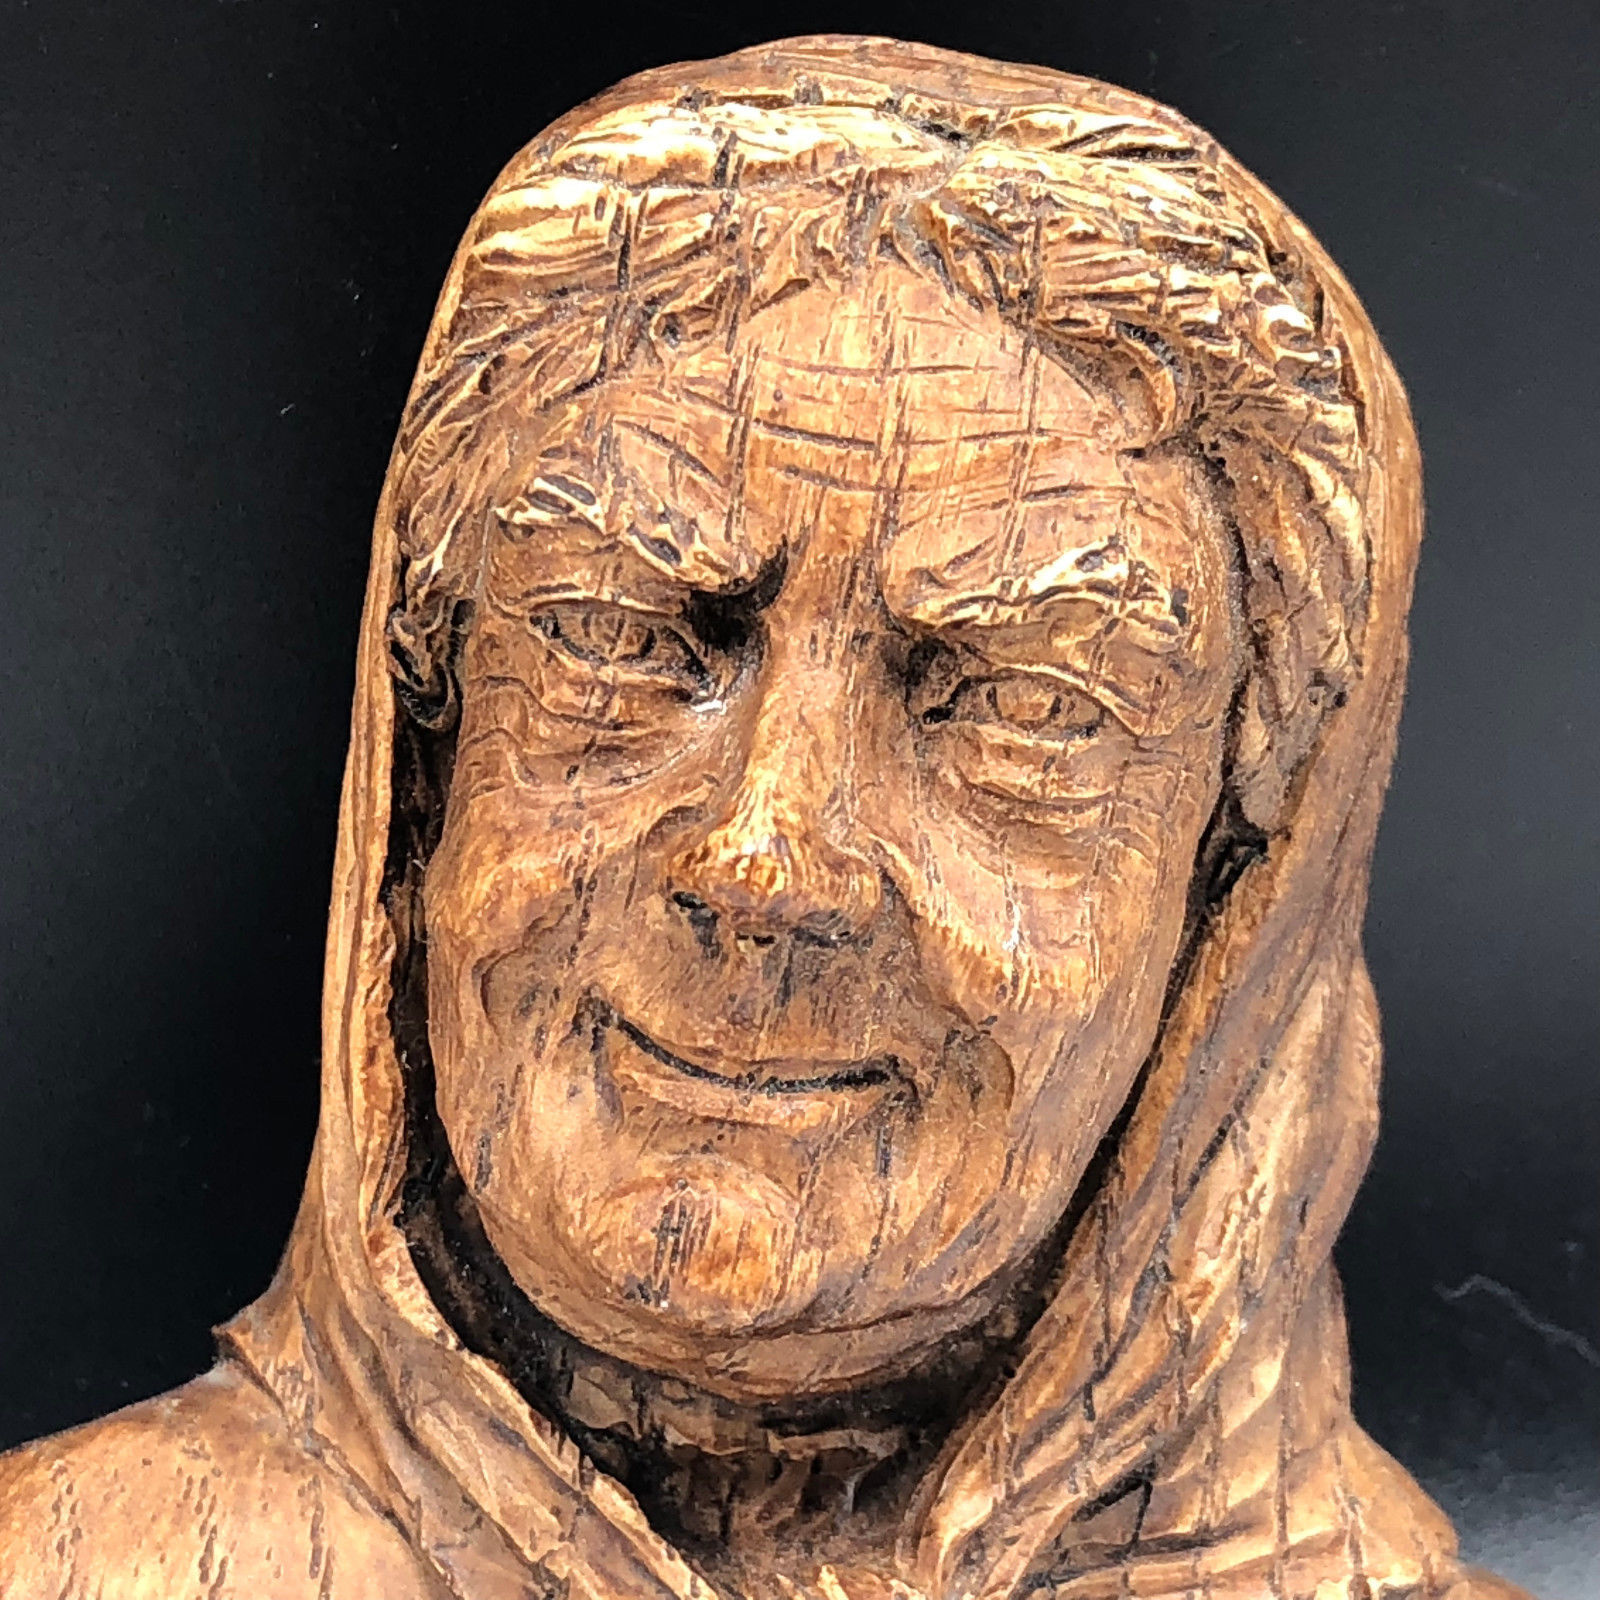 BLACK FOREST VINTAGE wood carved figurine Germany old lady kerchief woman bust